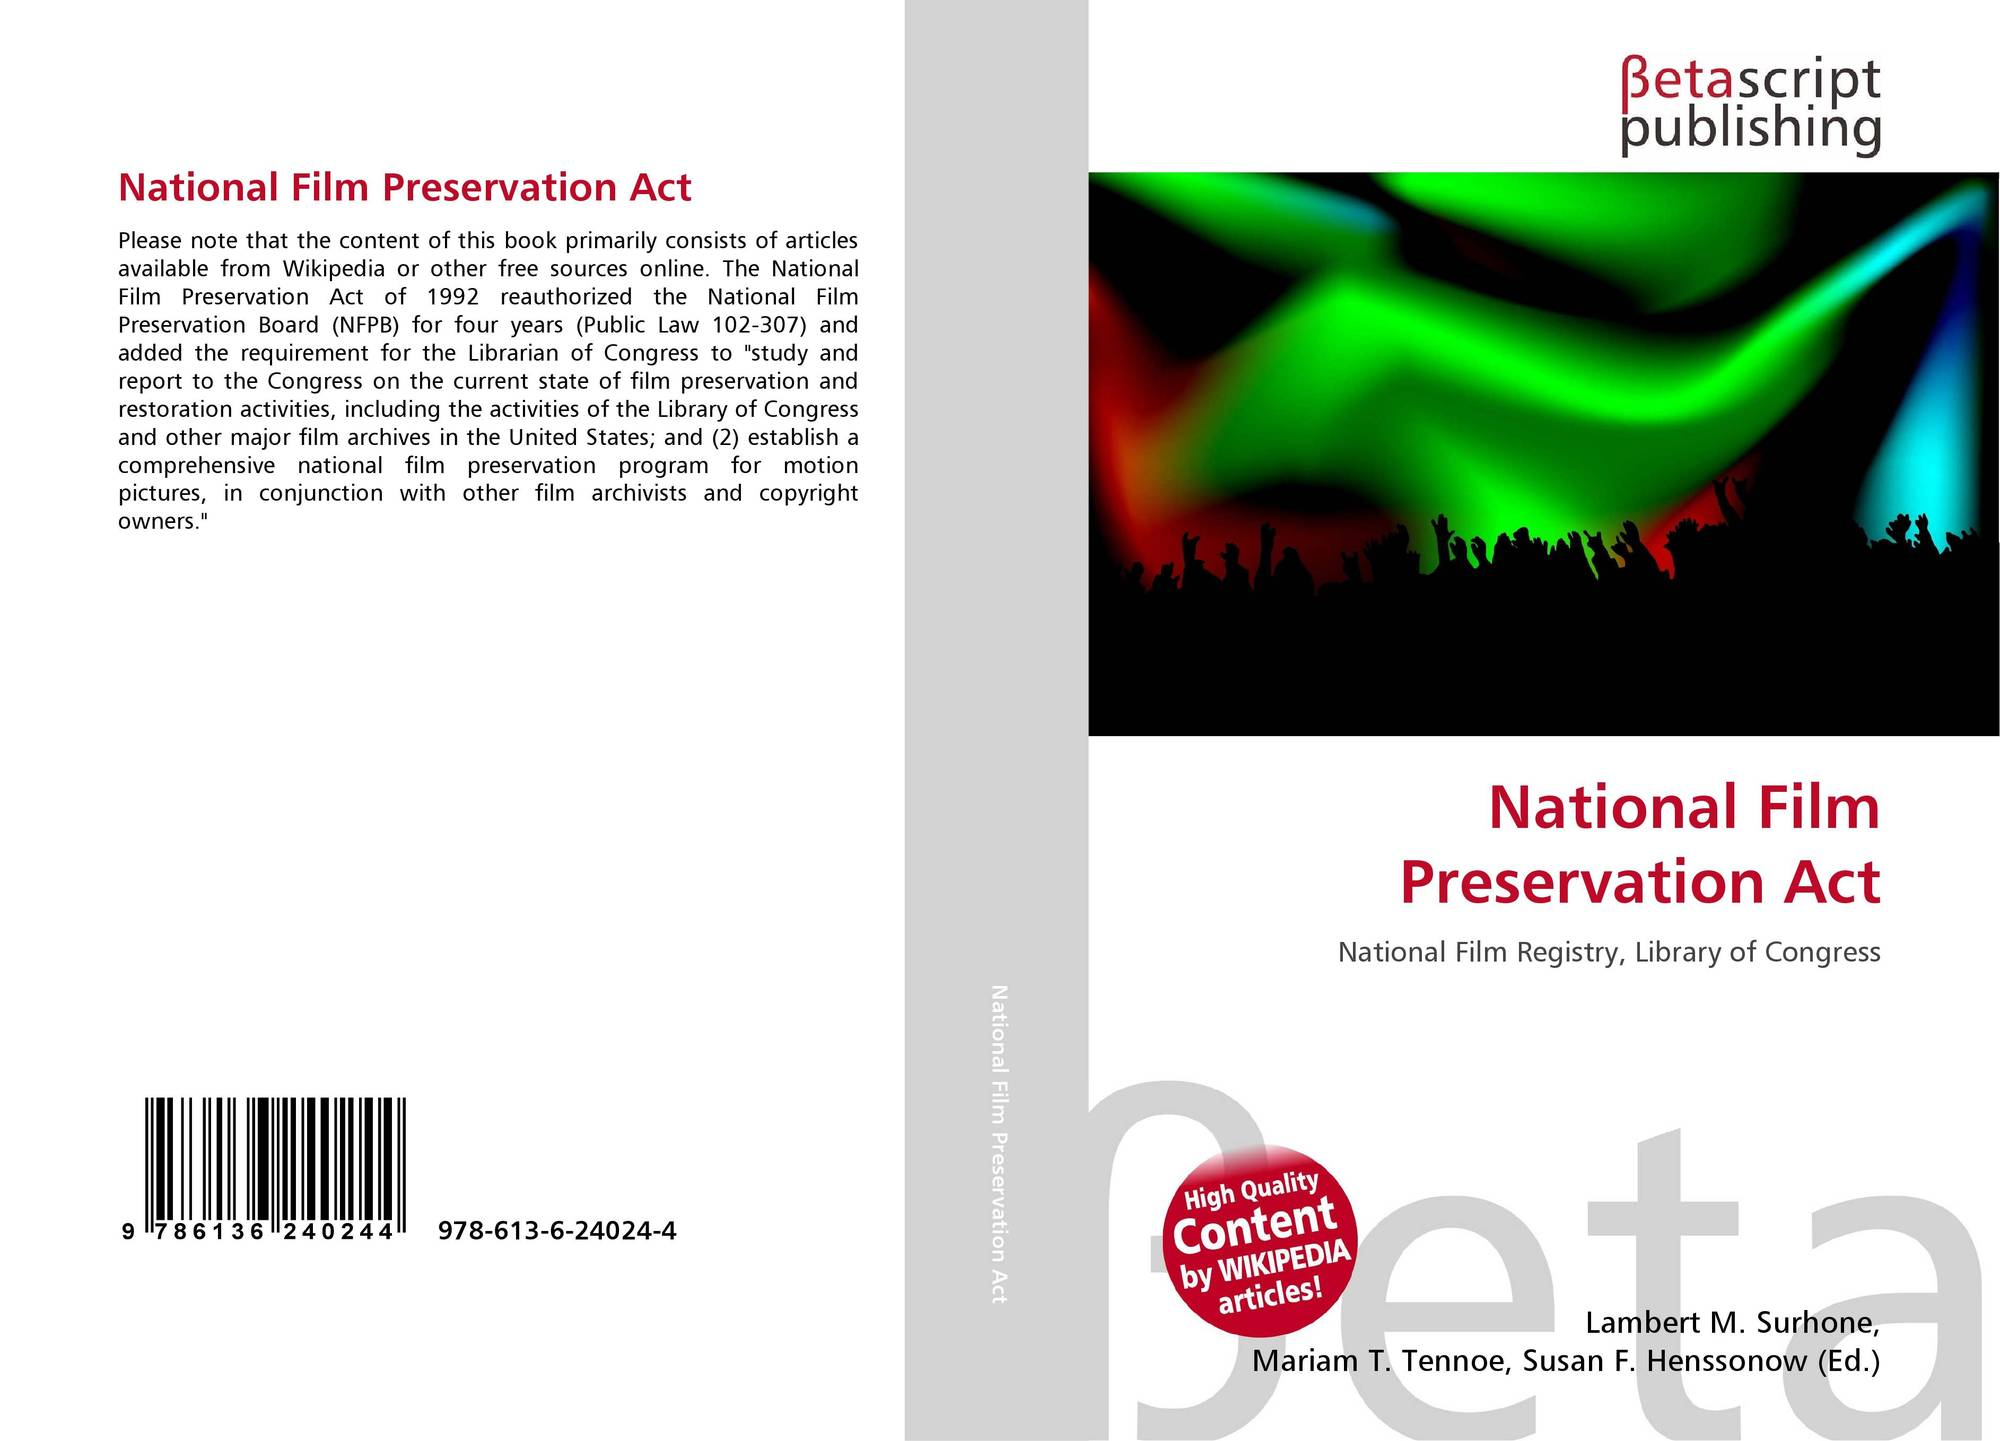 Bookcover Of National Film Preservation Act Omni Badge 9307e2201e5f762643a64561af3456be64a87707602f96b92ef18a9bbcada116